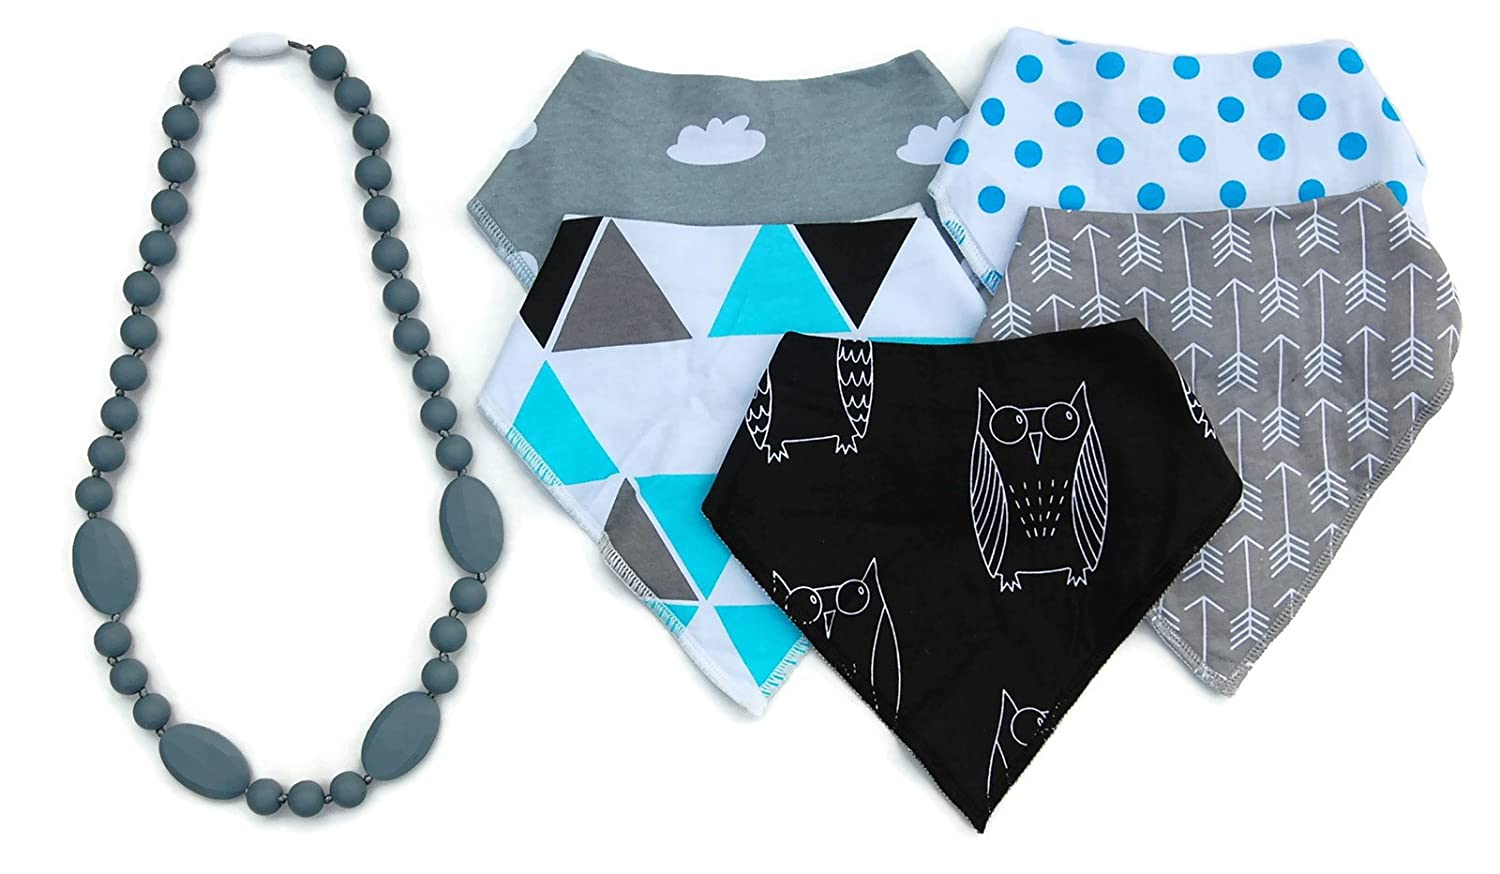 Boys Bandana Bibs & Silicone Teething Necklace Set by The Spunky Baby by The Spunky Baby   B01DTNJJ7O